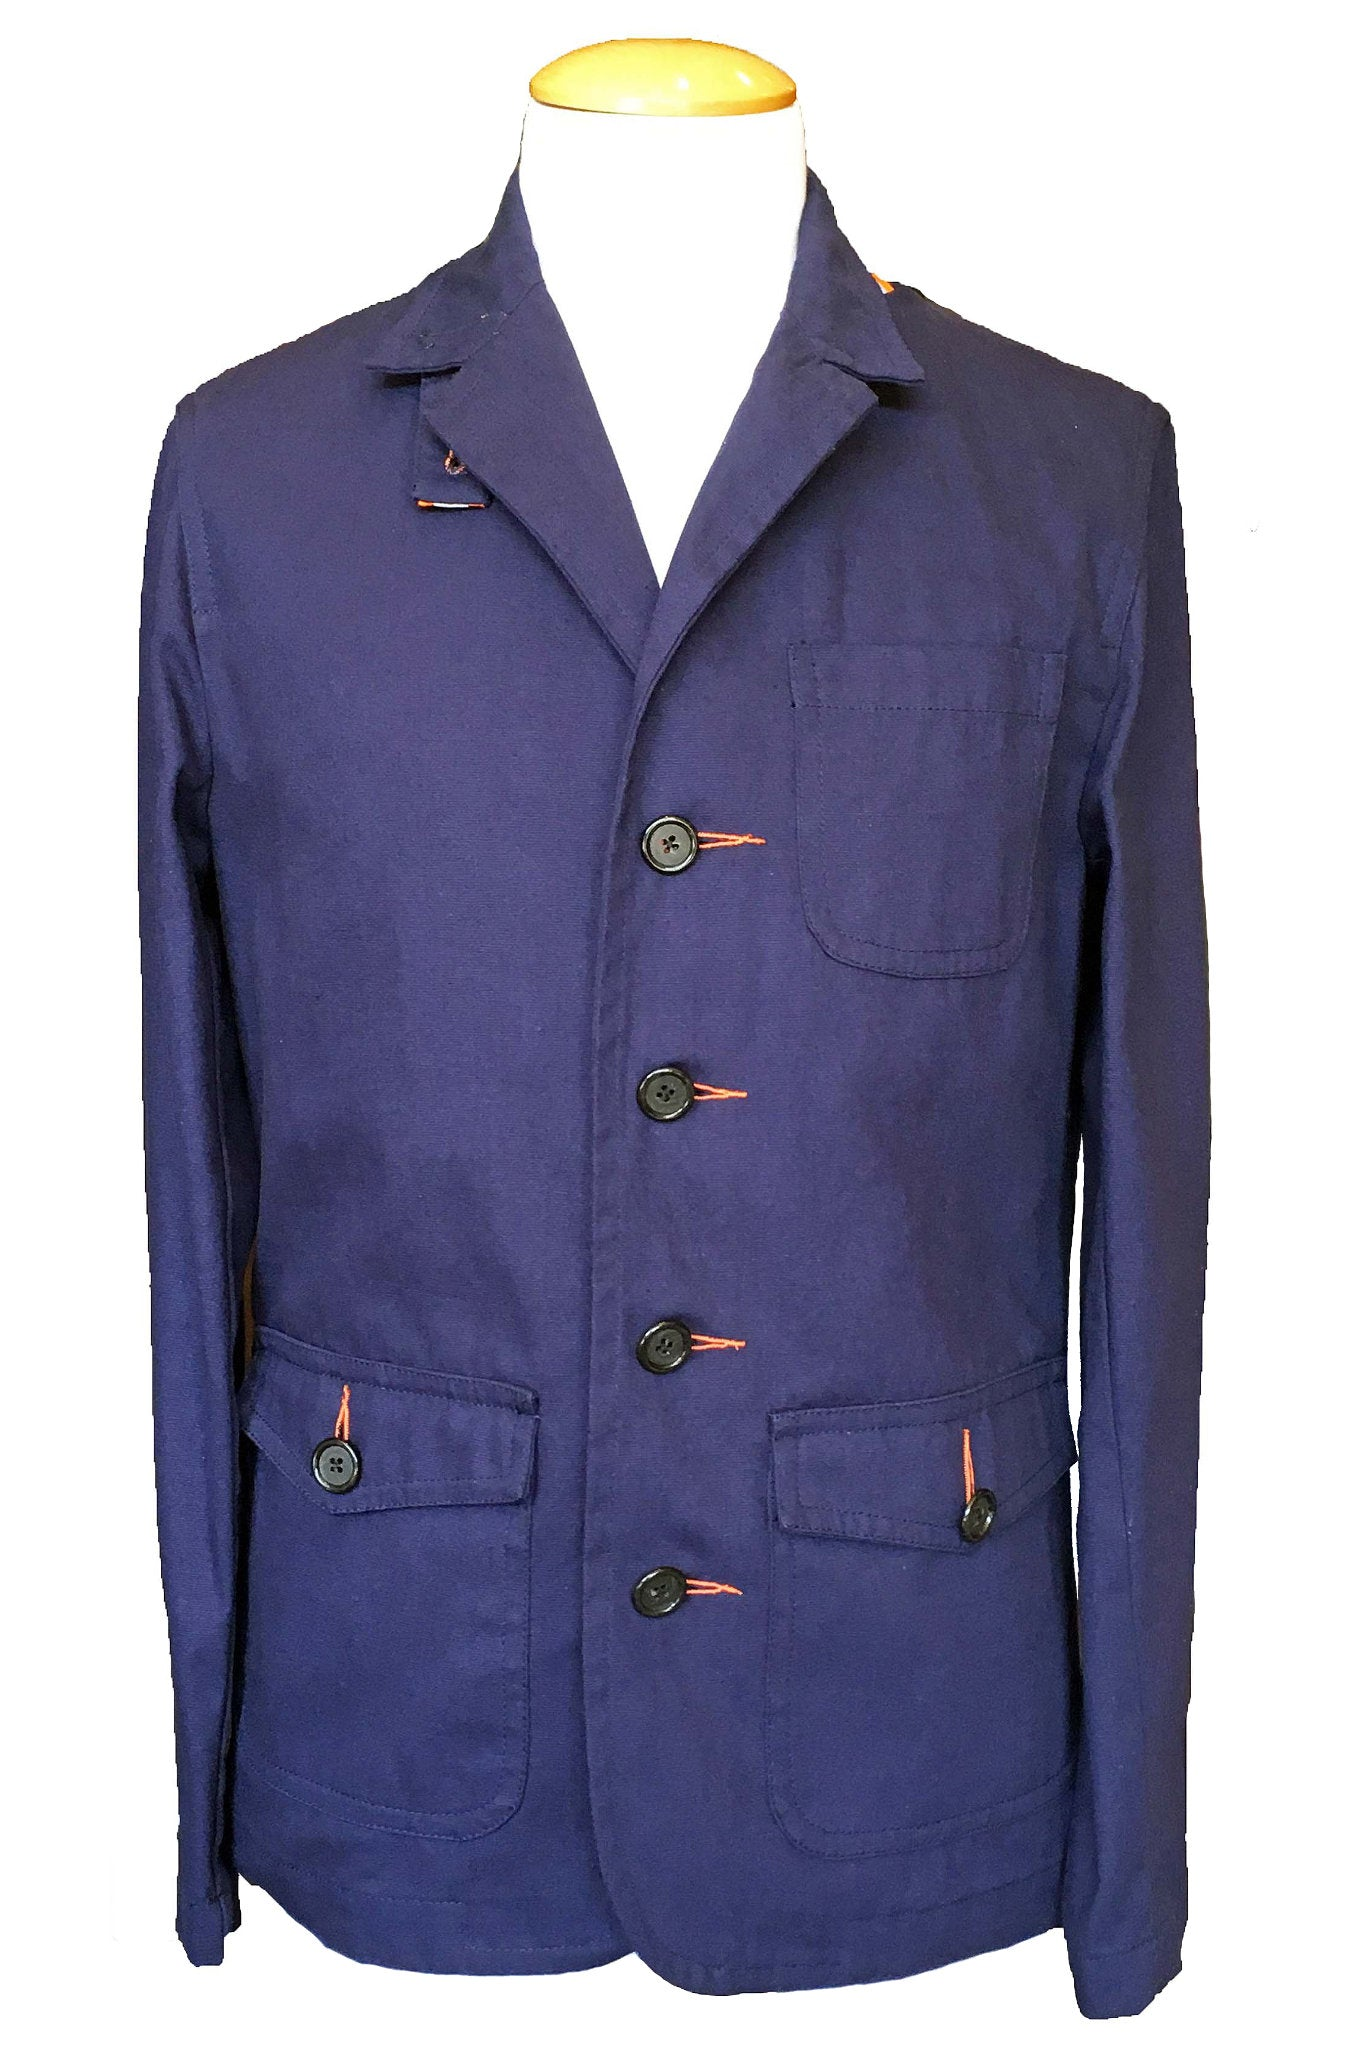 Upside Cyclestyle Men's Twill Chore Blazer in Navy